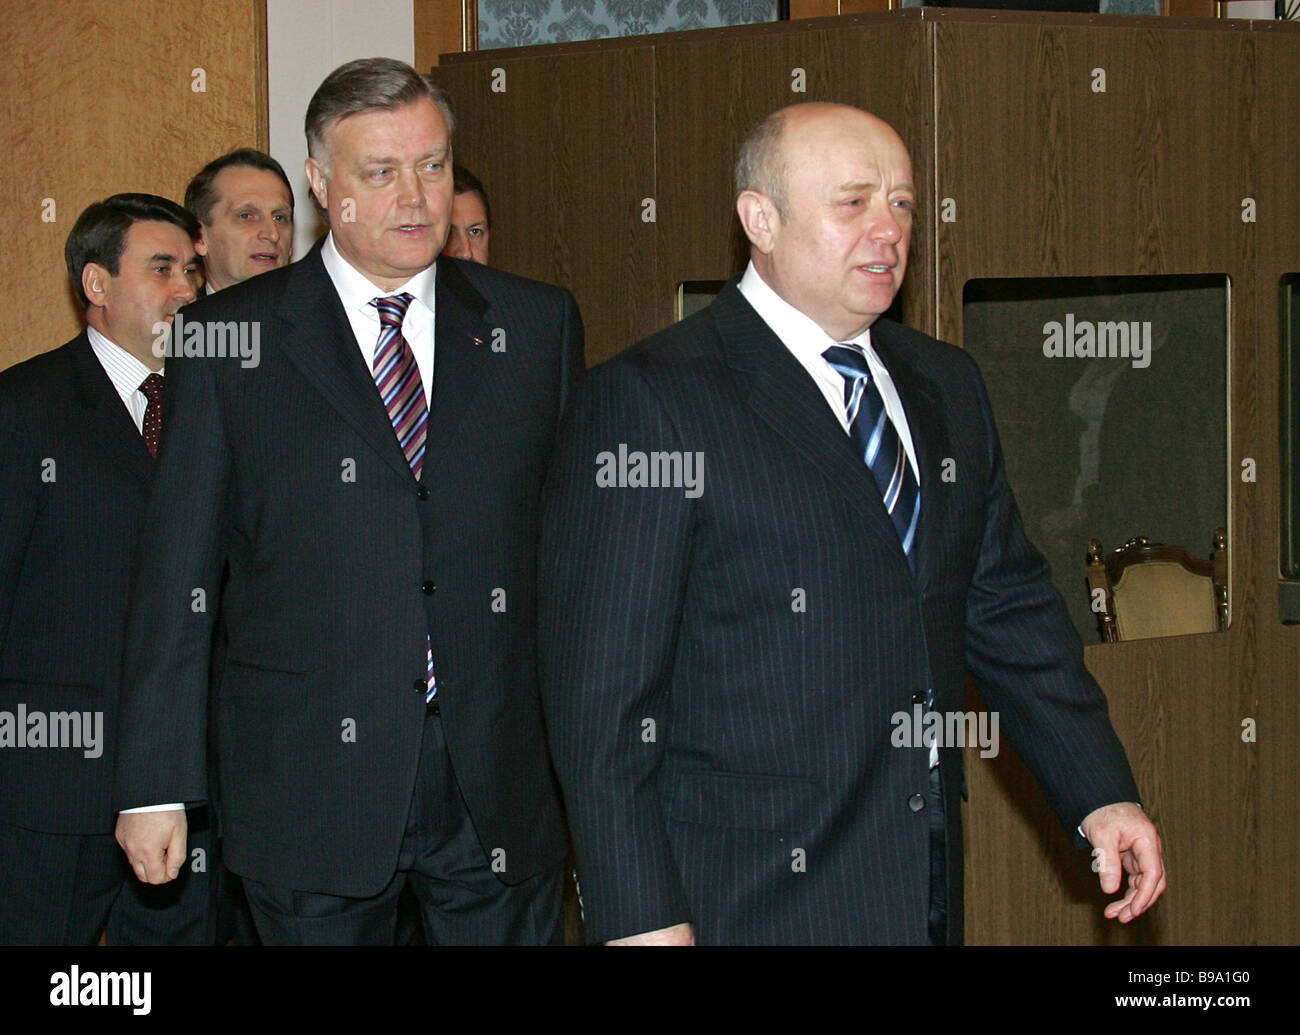 https://c8.alamy.com/comp/B9A1G0/vladimir-yakunin-president-of-company-russian-railways-and-russian-B9A1G0.jpg